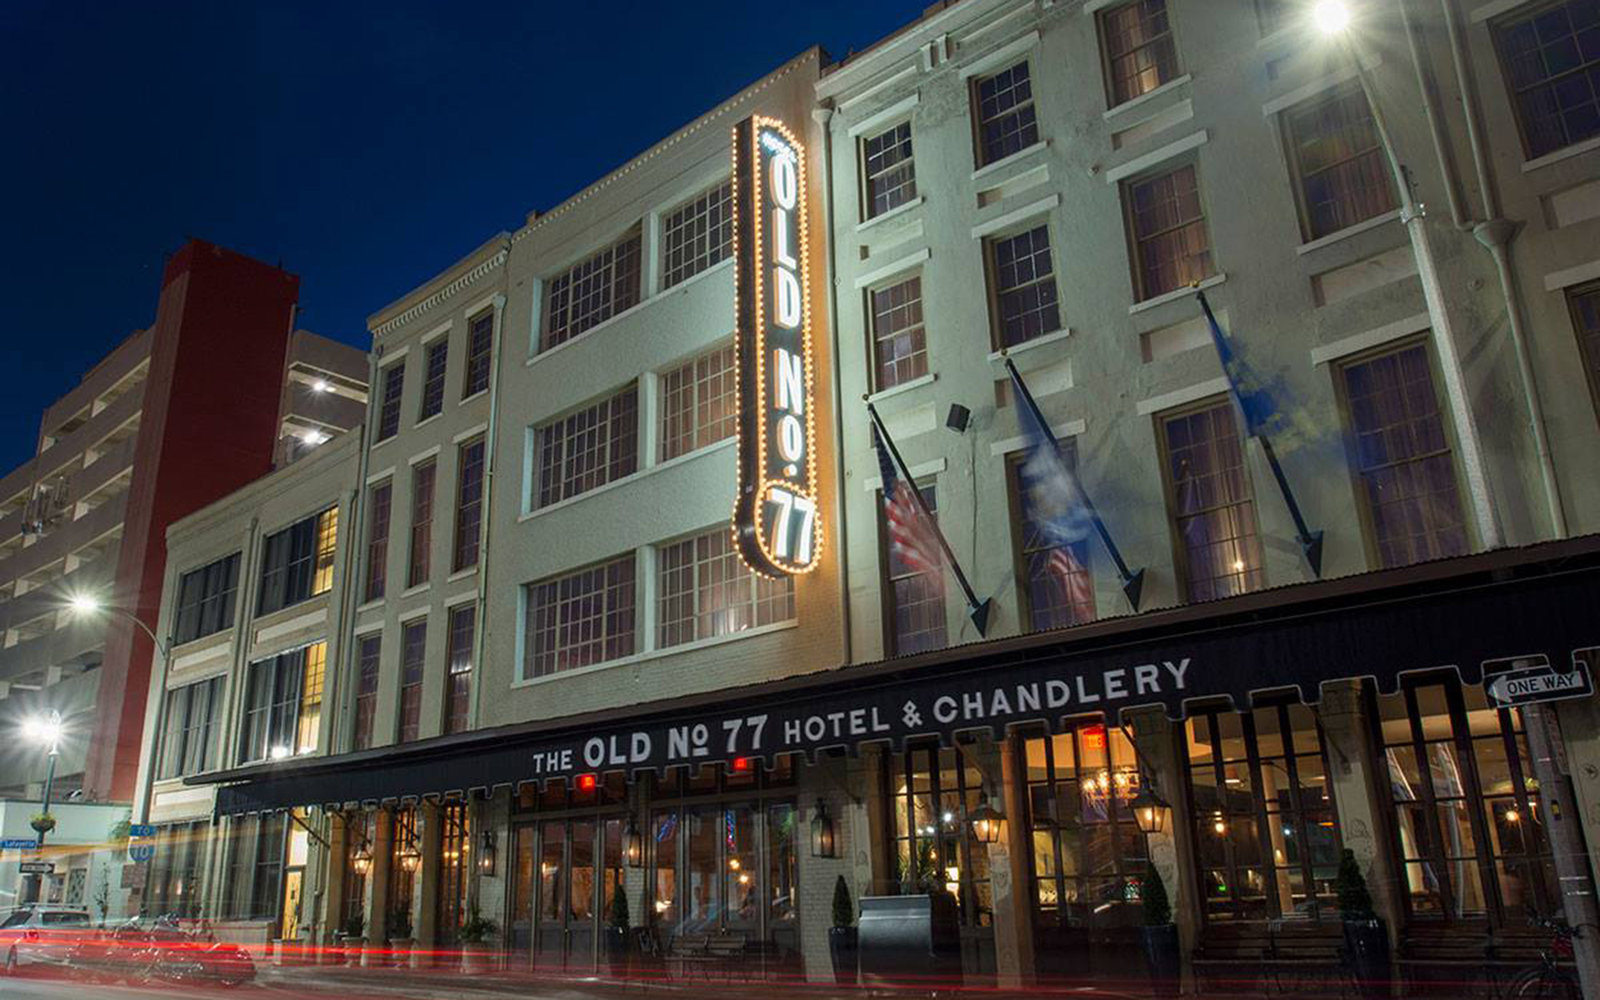 8. The Old No. 77 Hotel & Chandlery, New Orleans, Louisiana